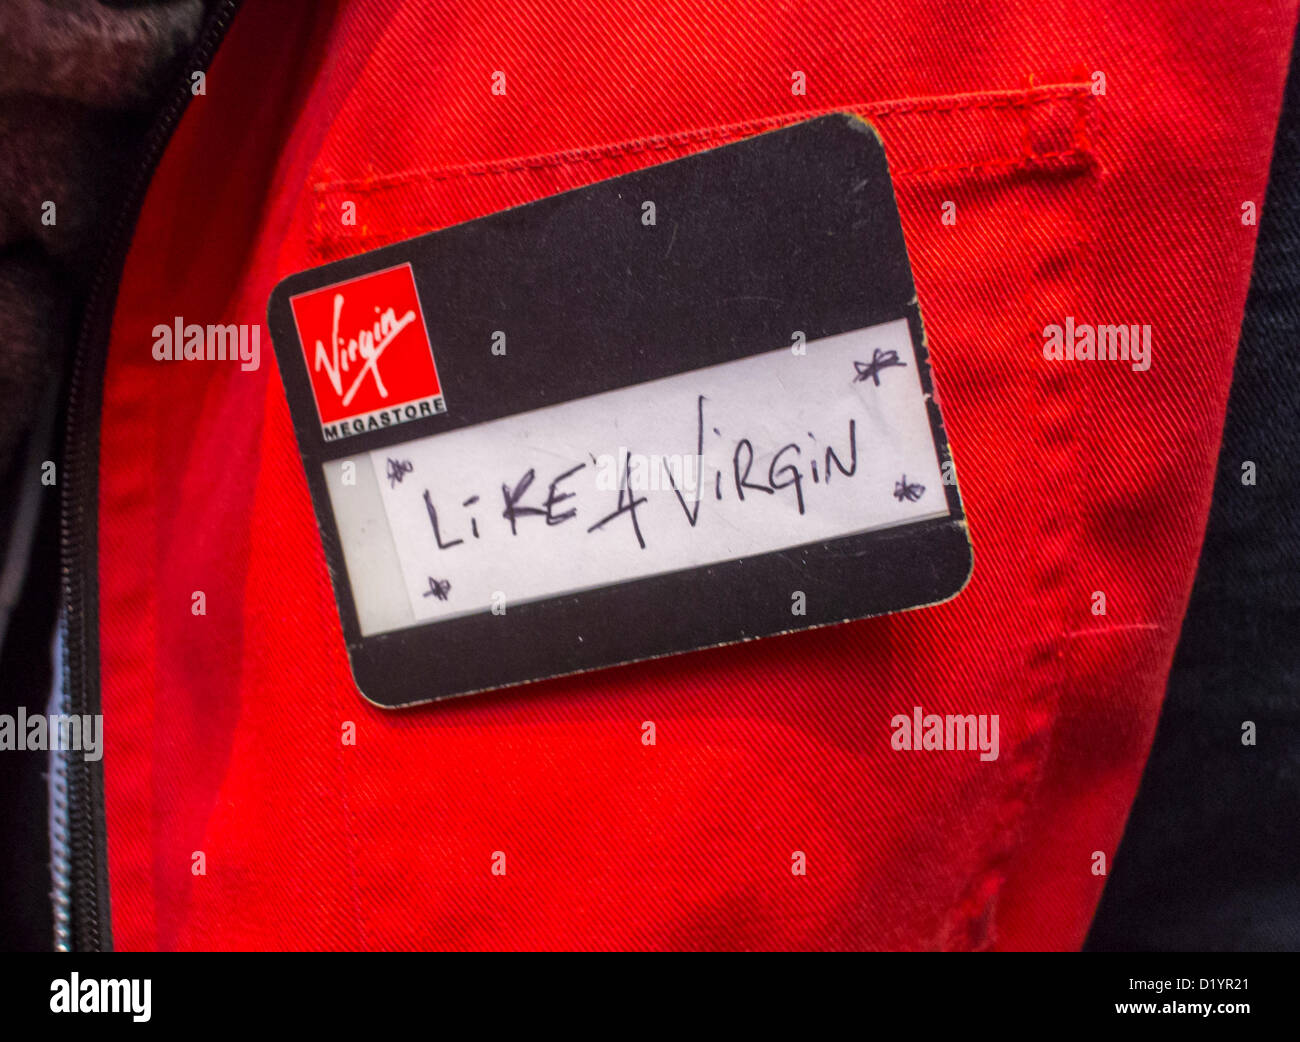 Paris, France, French Employees of Virgin Stores Protest Against Store Closures, detail badge 'Like a Virgin' - Stock Image